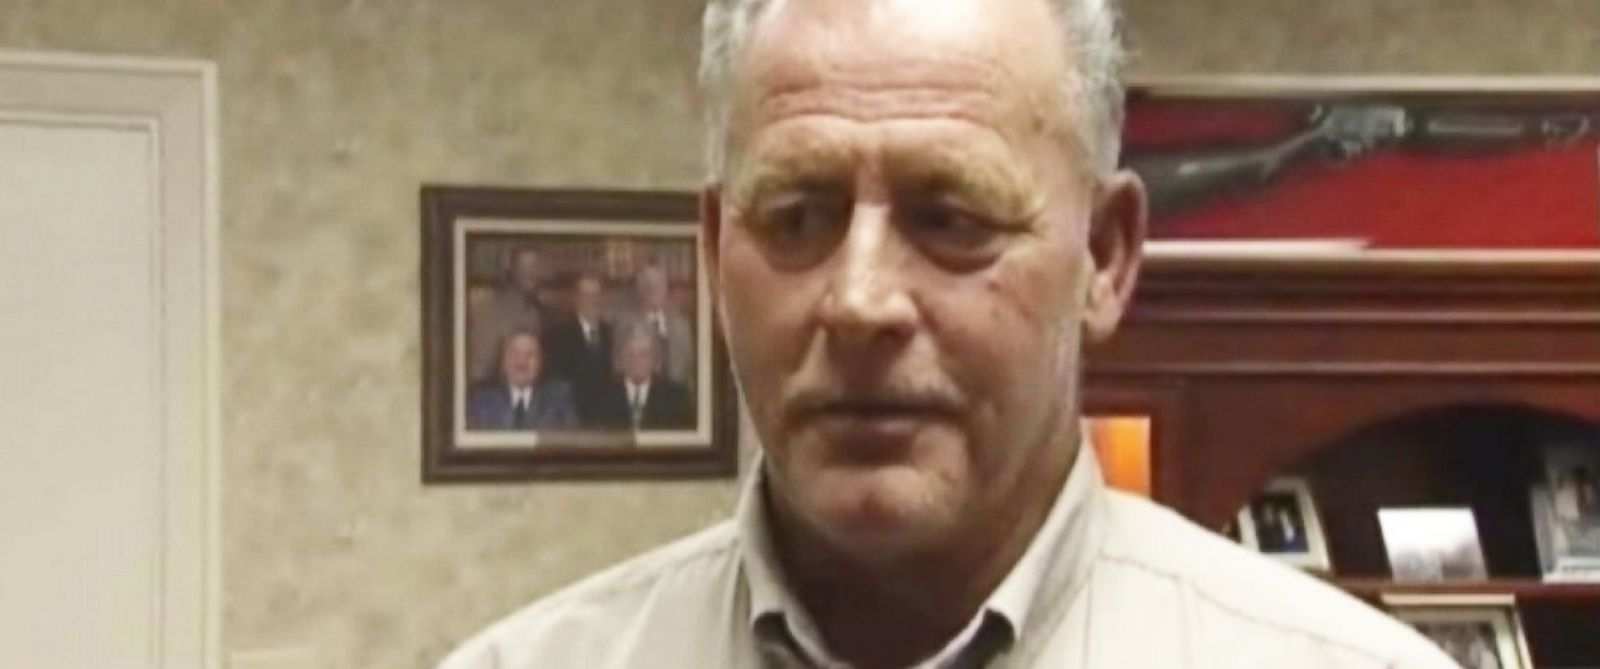 PHOTO: Robert Pruett, the City Administrator of Galena Park, refuses to leave the City Hall building after being fired.